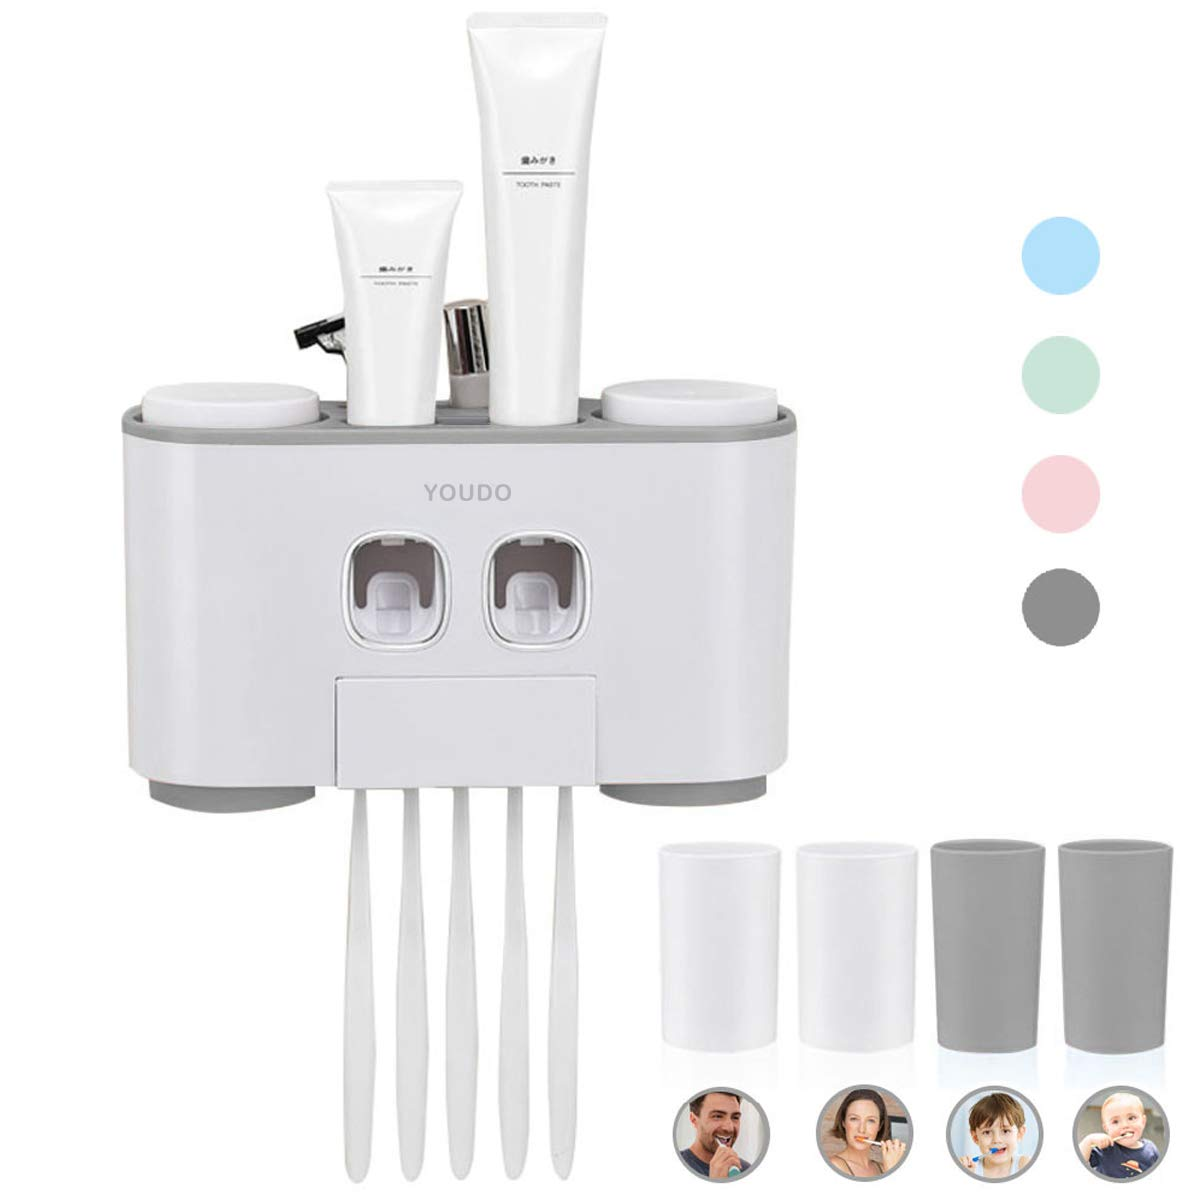 Automatic Toothpaste Dispenser and Toothbrush Holder Set - Wall Mounted Hands-Free 2 Toothpaste Squeezers with 5 Brushes…